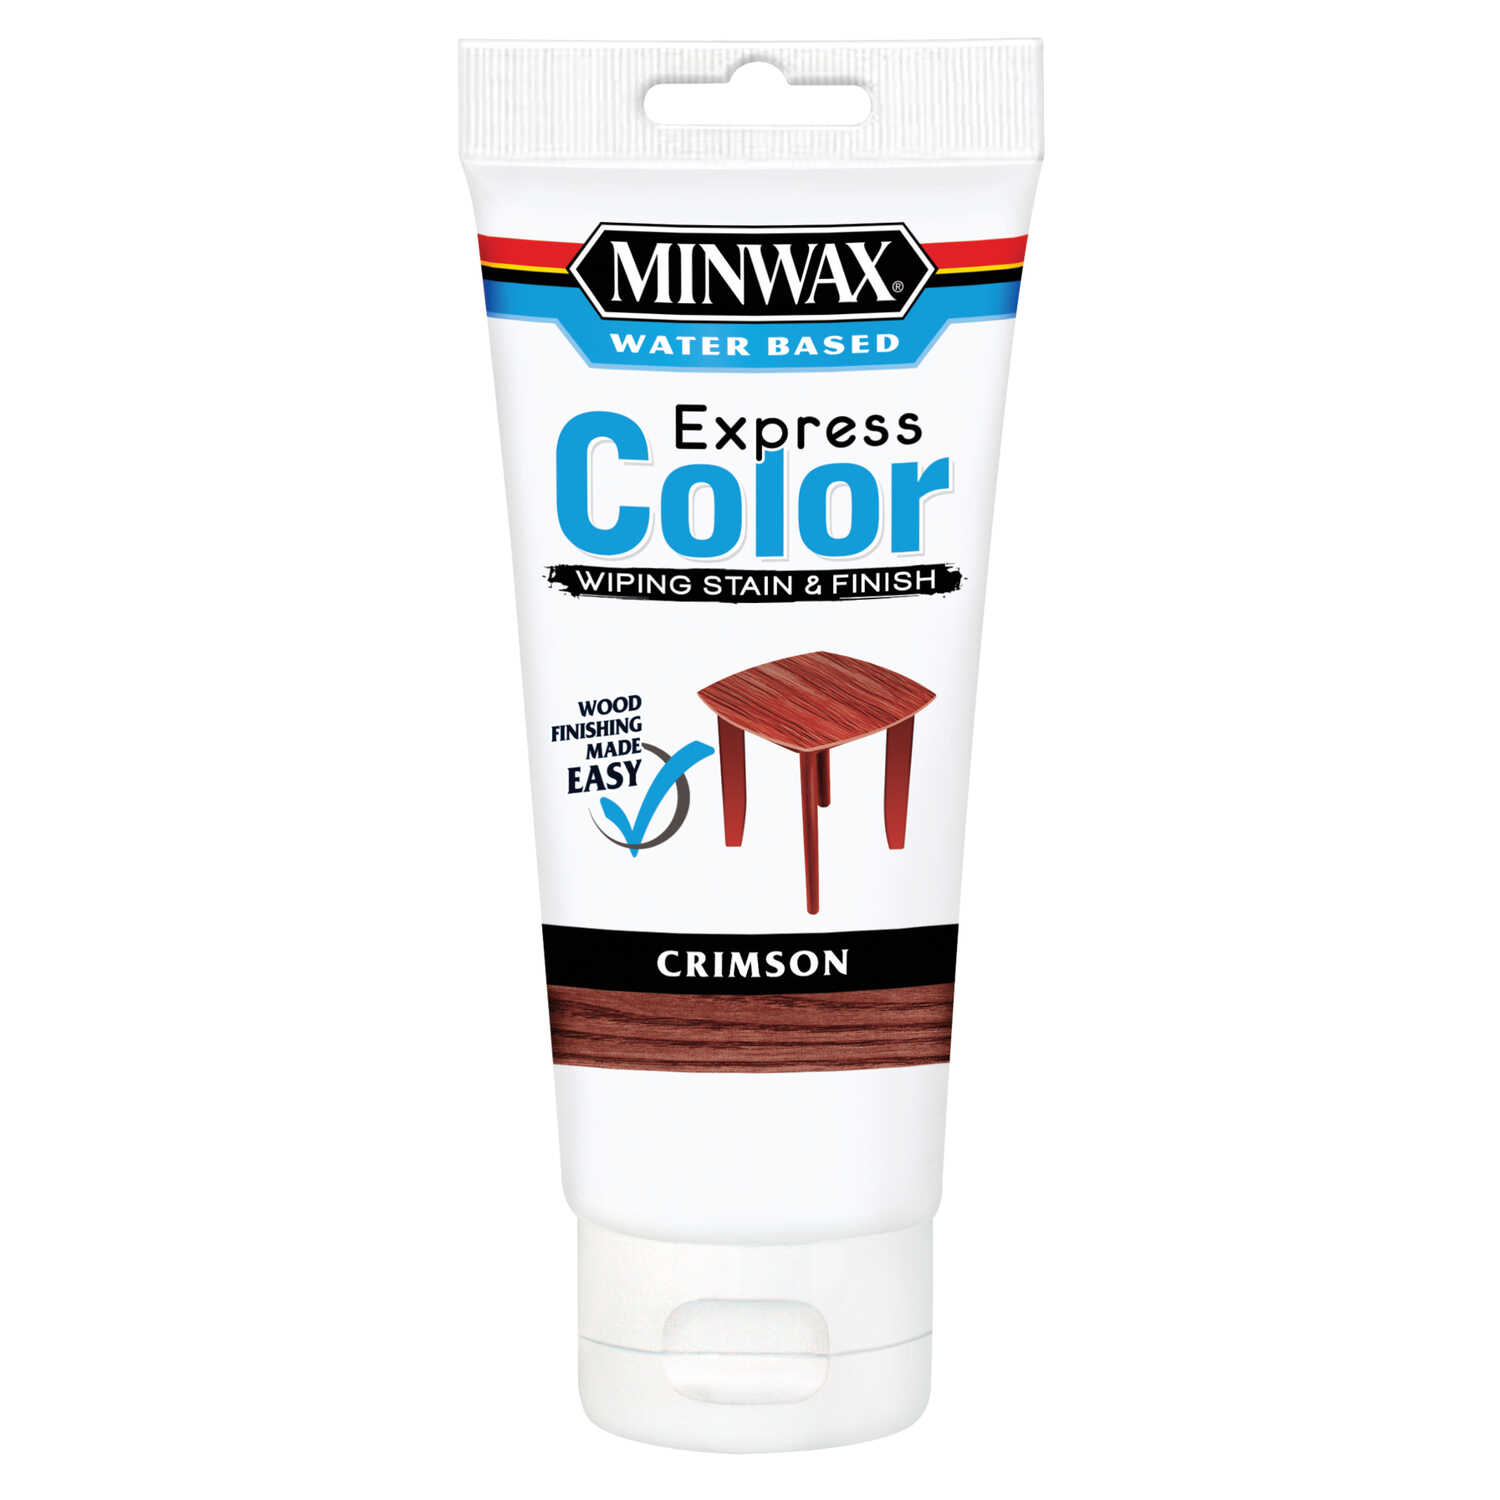 Minwax  Express Color  Semi-Transparent  Crimson  Water-Based  Acrylic  Wiping Stain and Finish  6 o